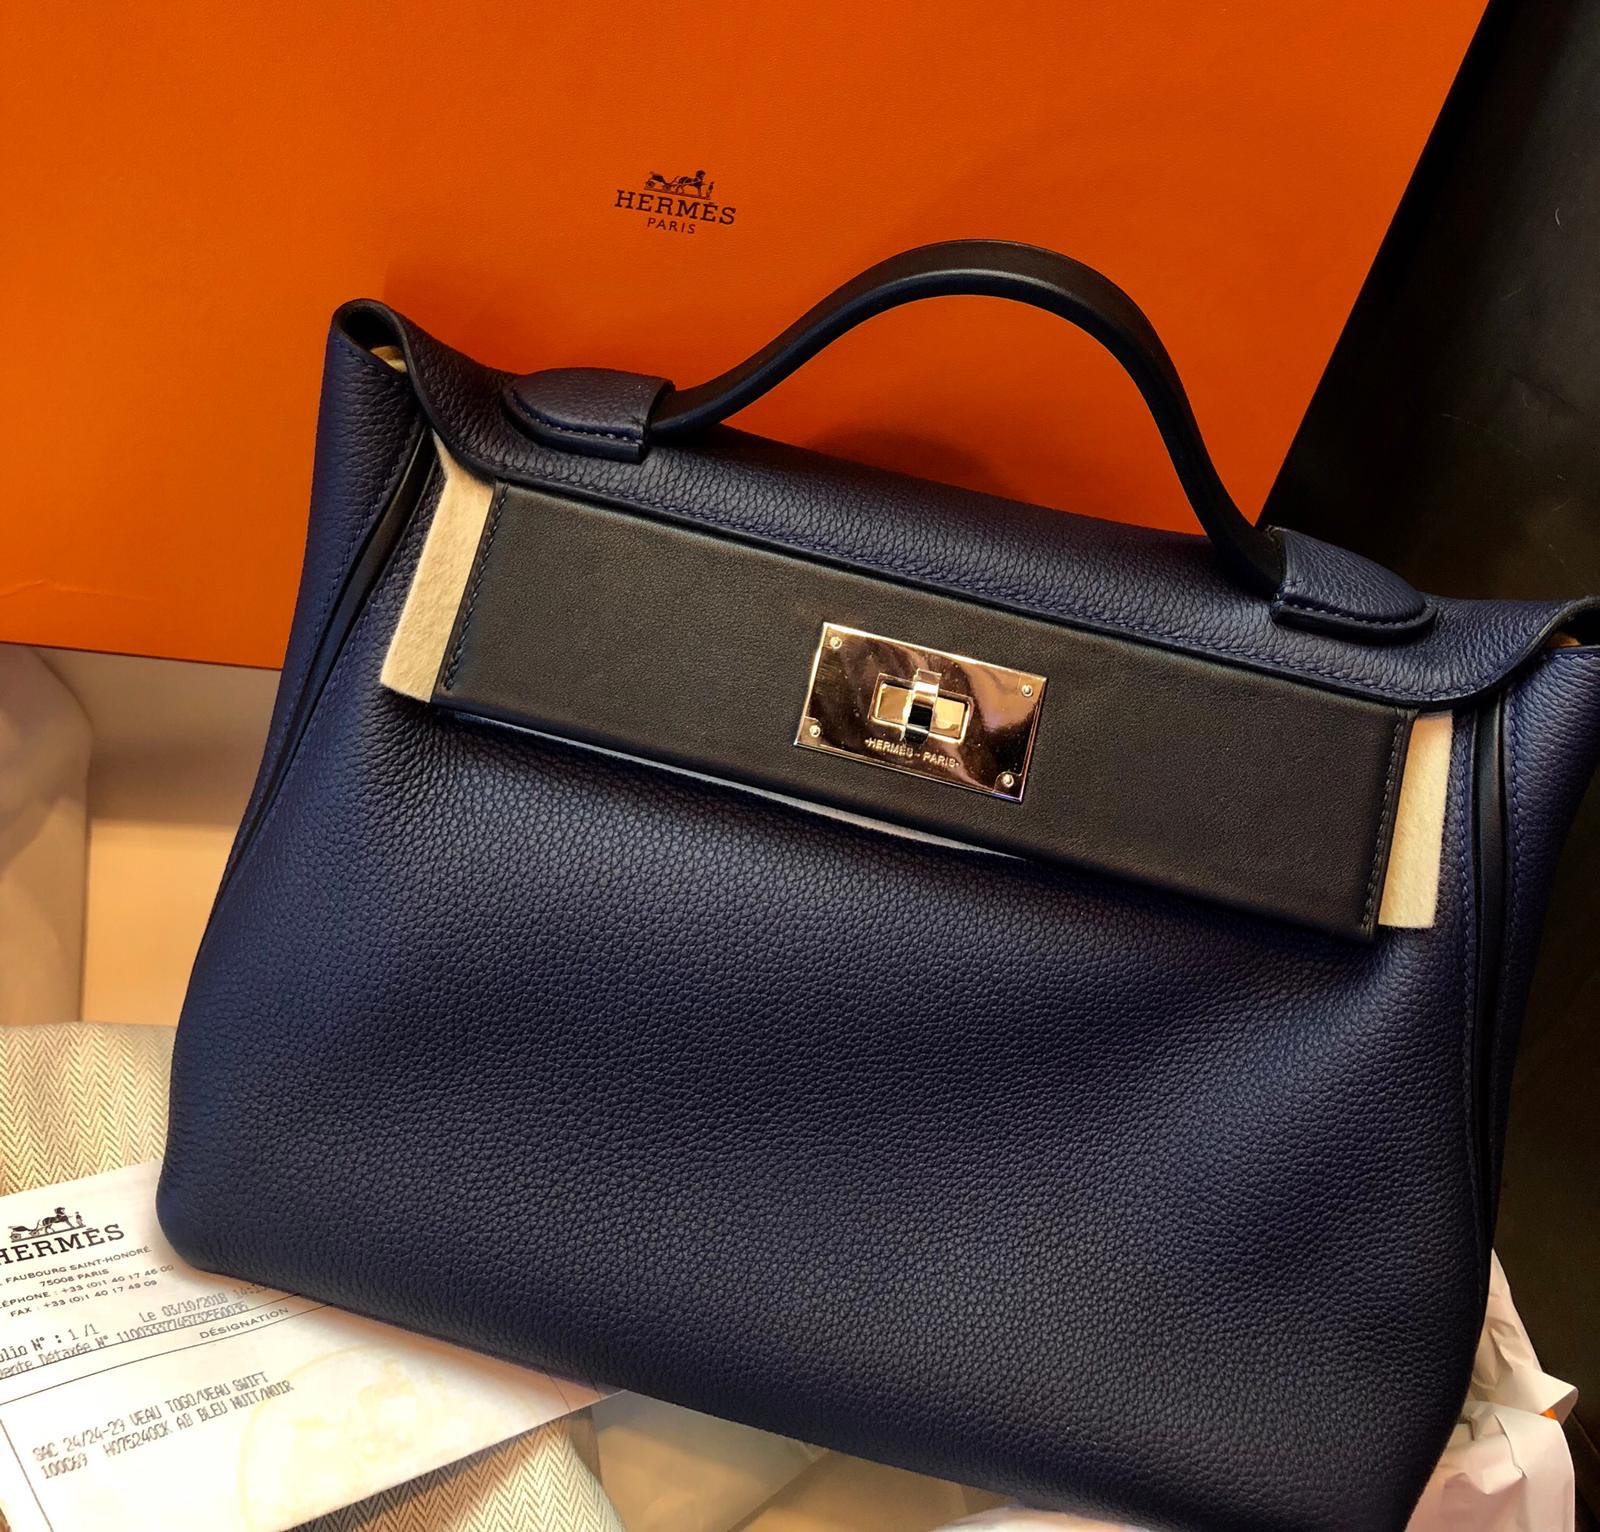 24*24 Hermes 24 24 2018年新款 香港未有 Luxury Bags And Wallets On